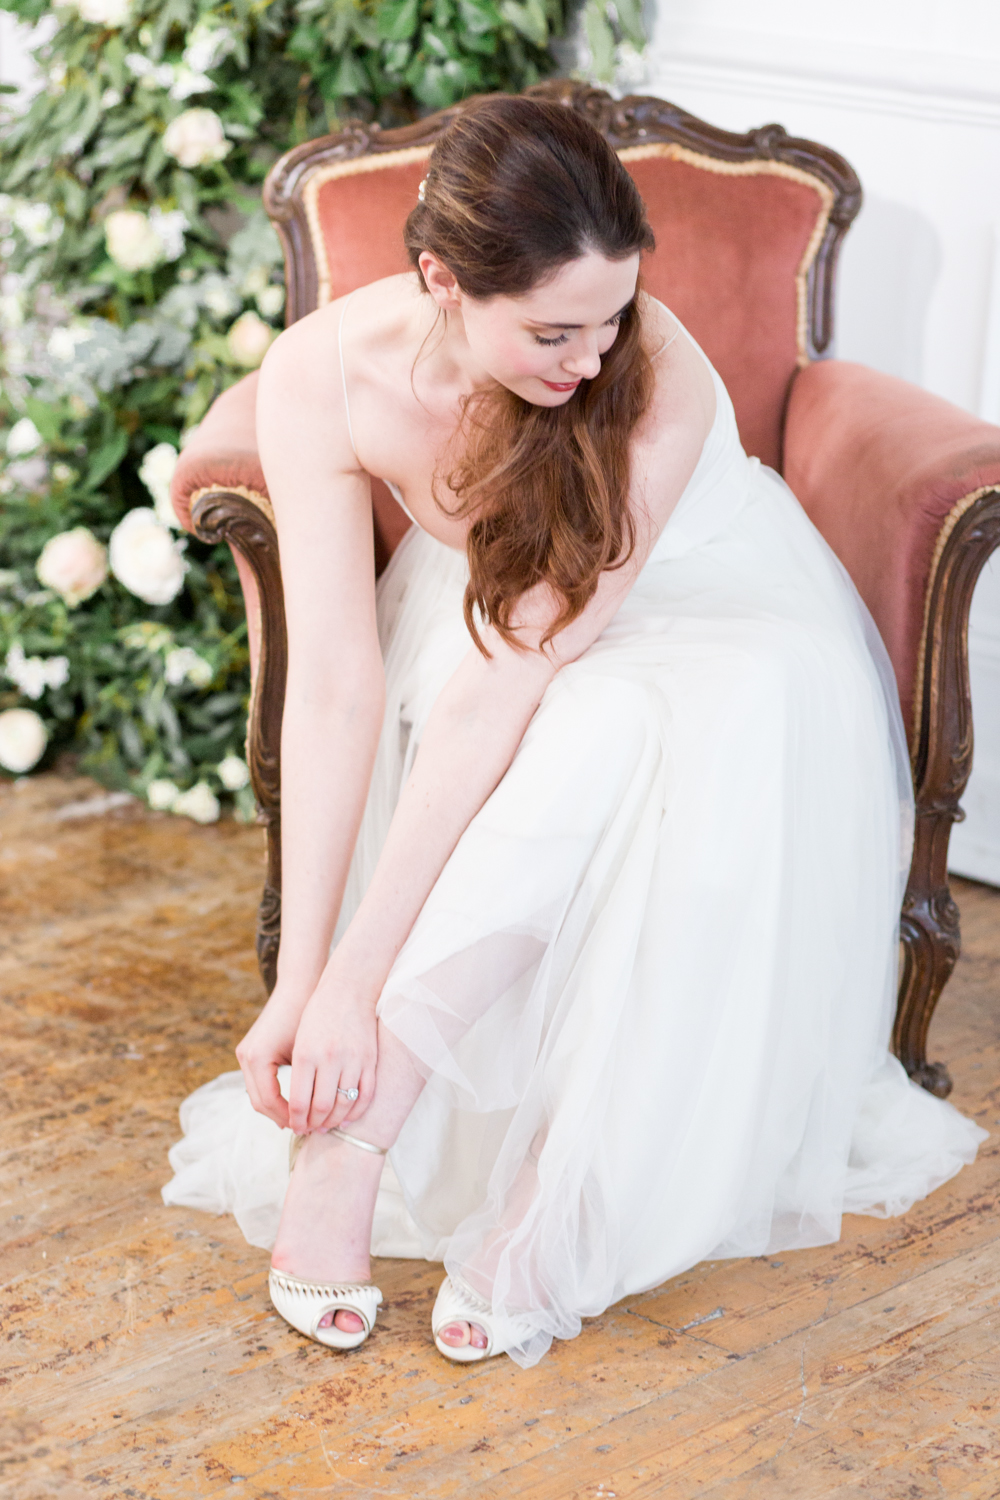 The Timeless Stylist - Elegant Wedding Shoot